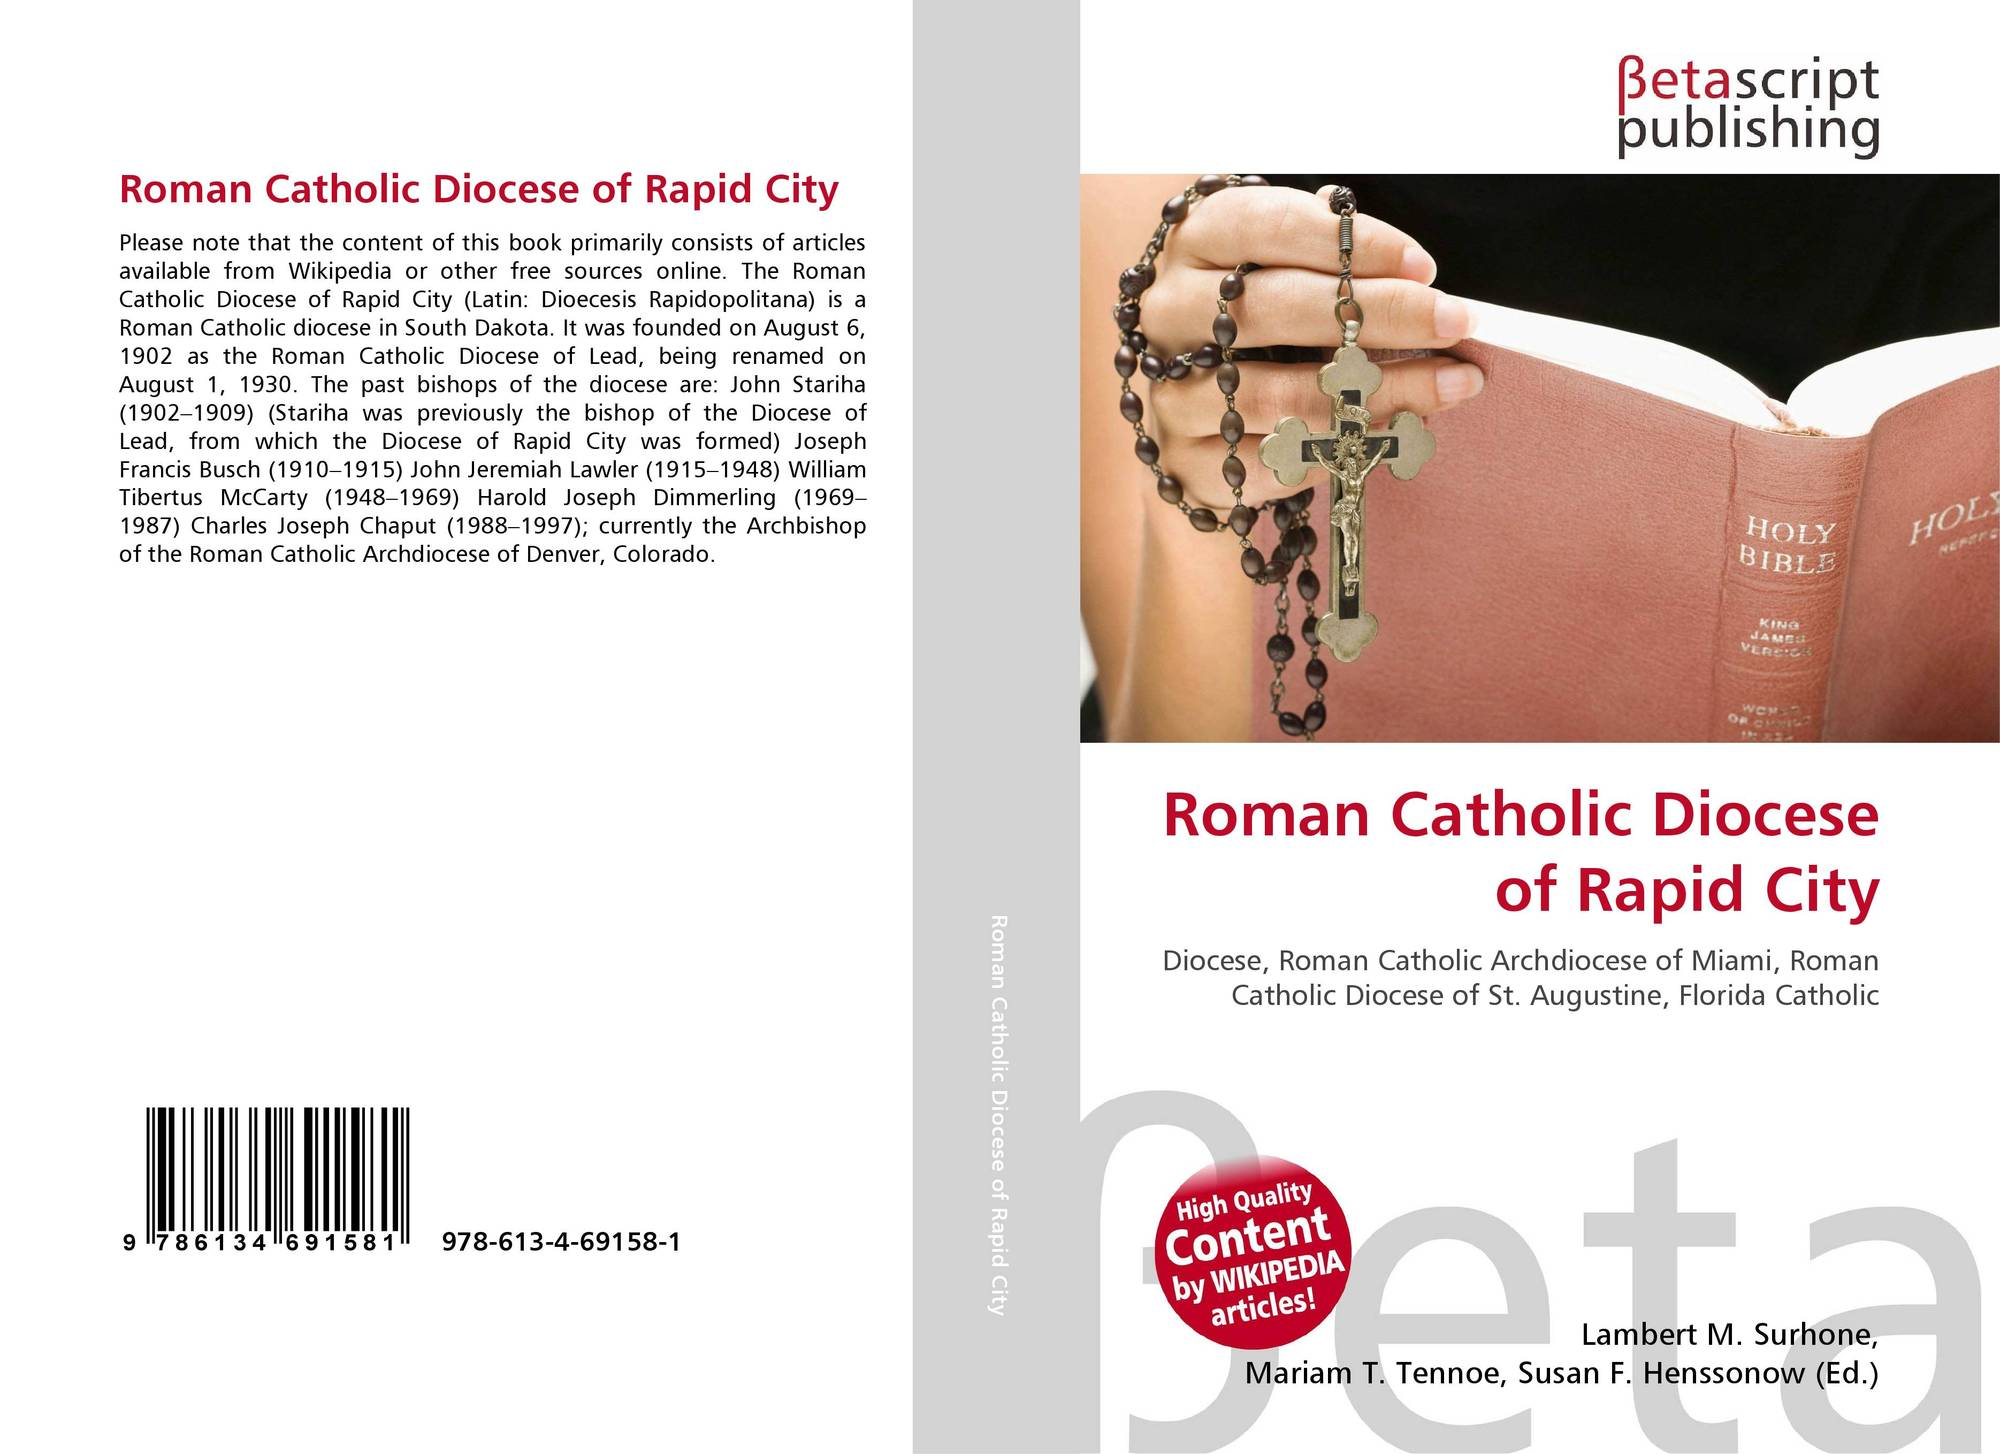 Rapid city catholic diocese